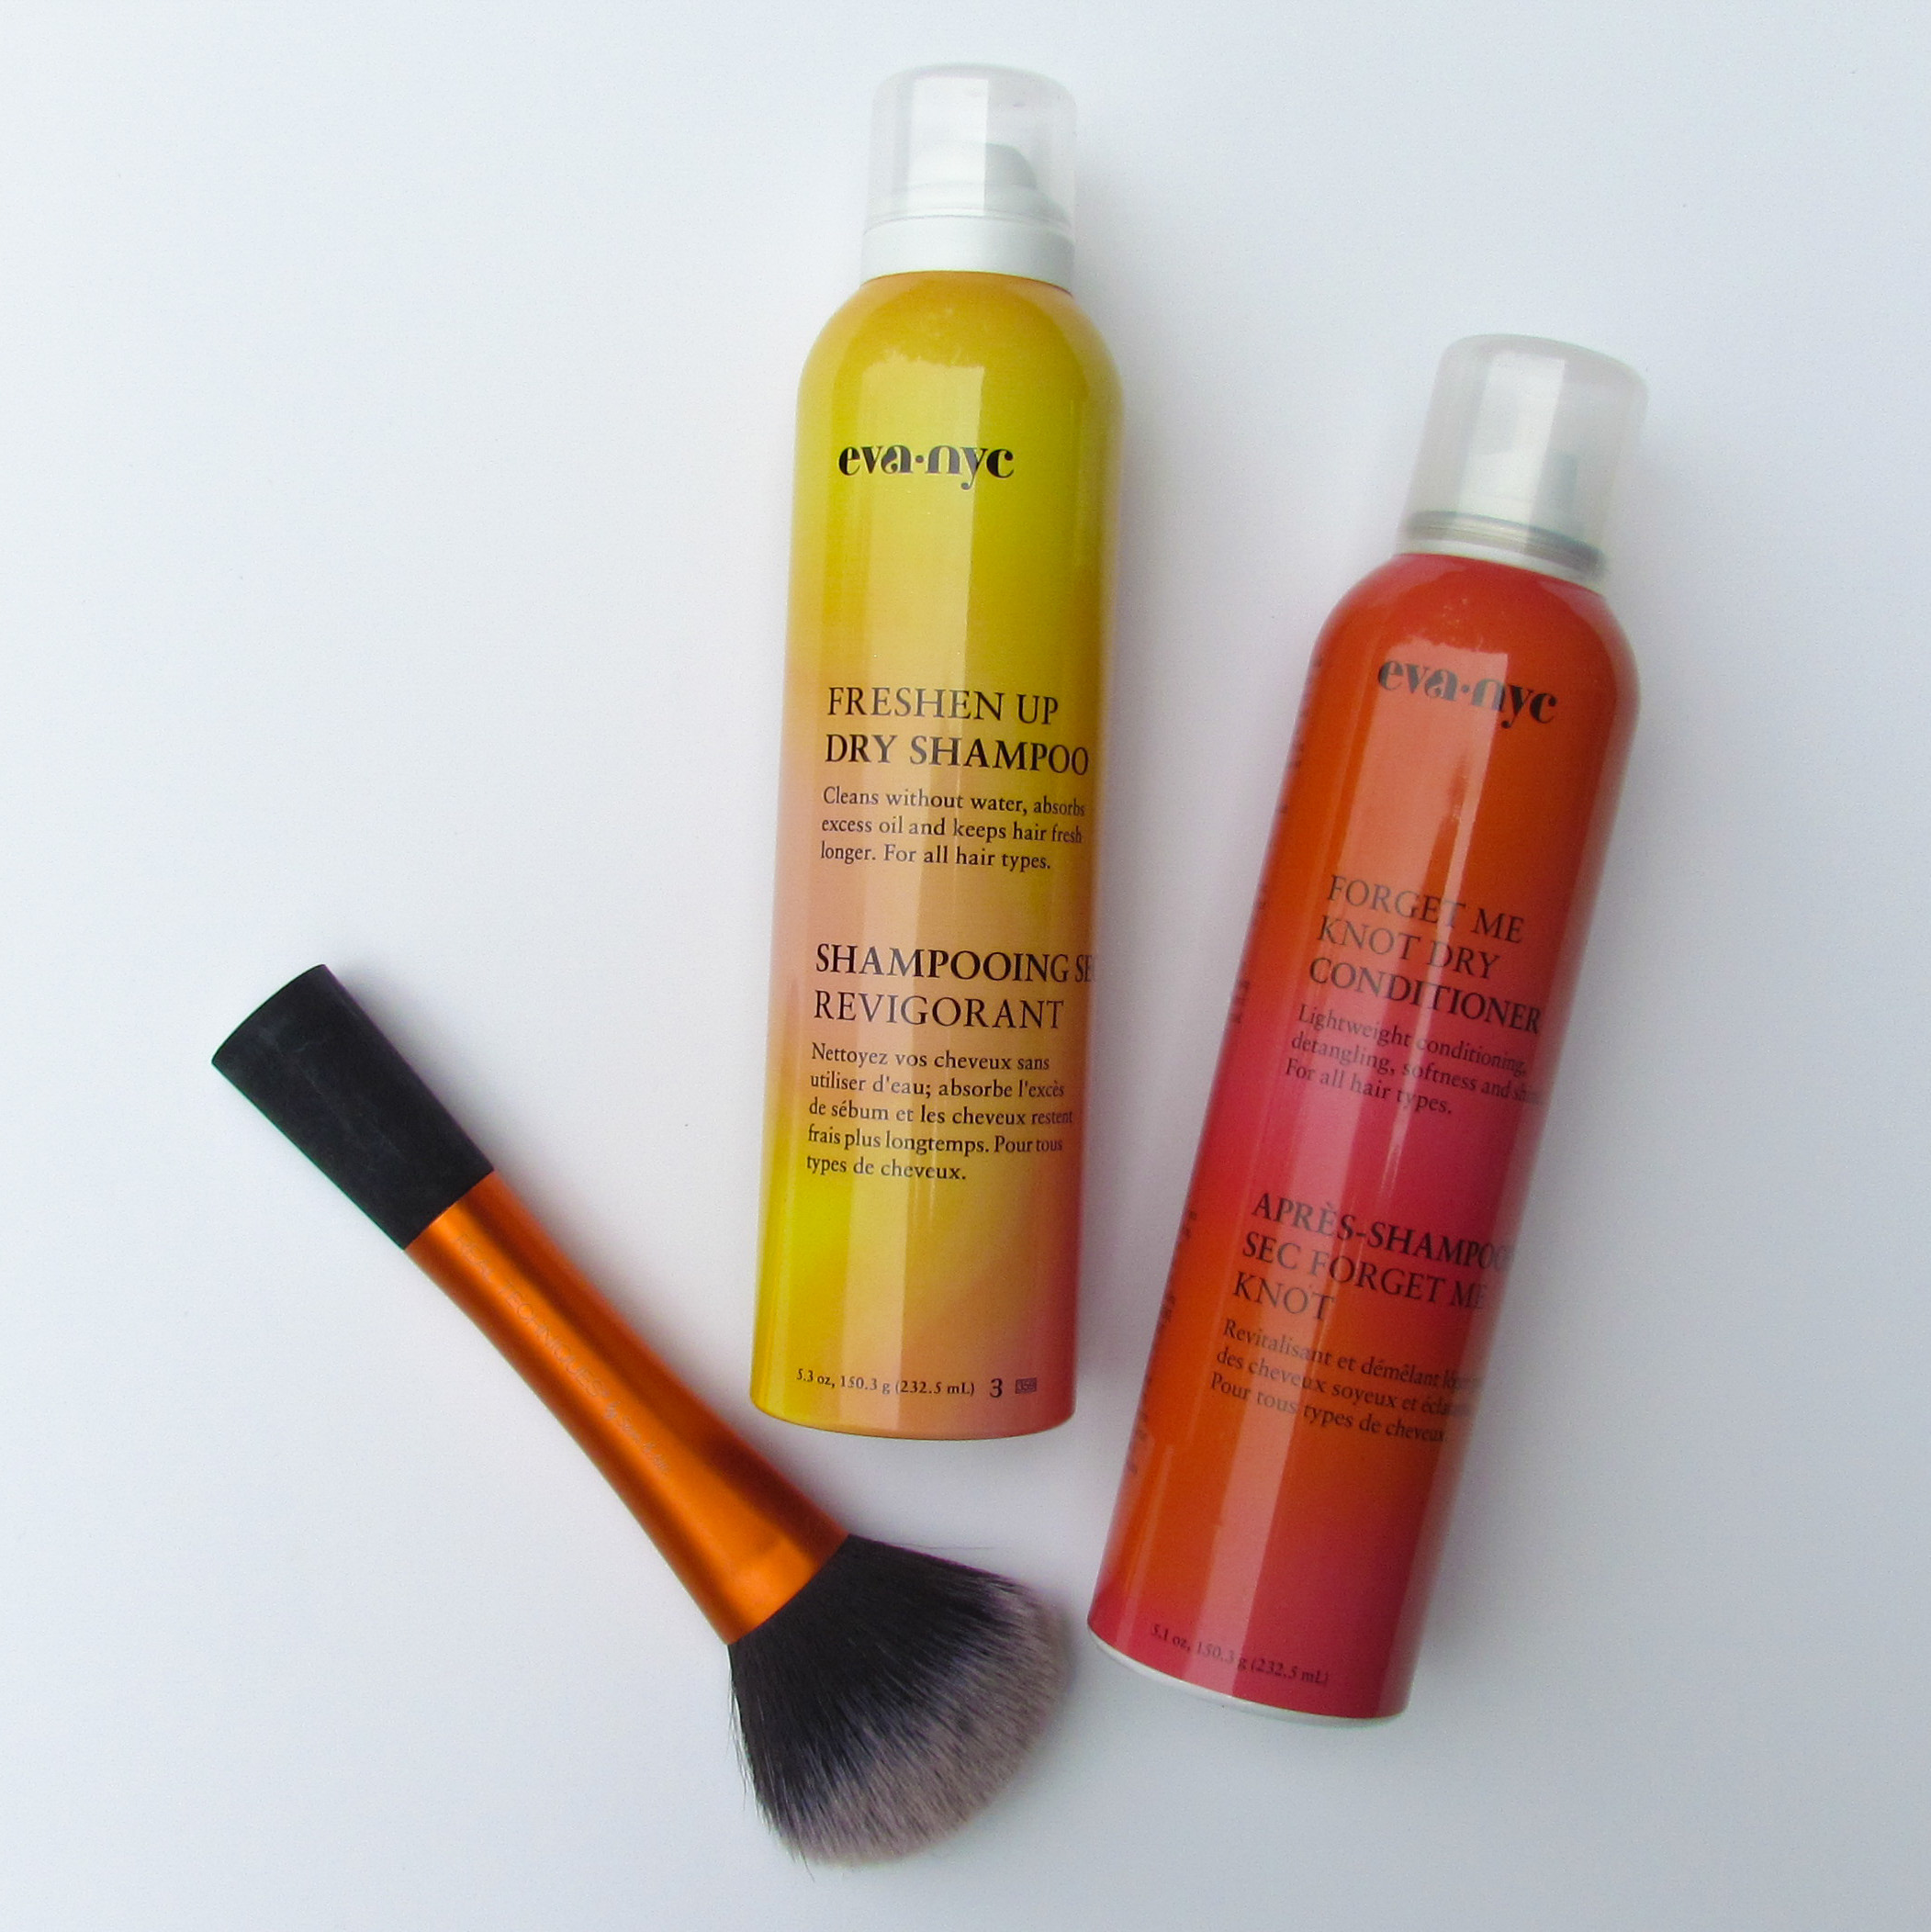 Eva NYC dry shampoo and dry conditioner, and real techniques powder brush